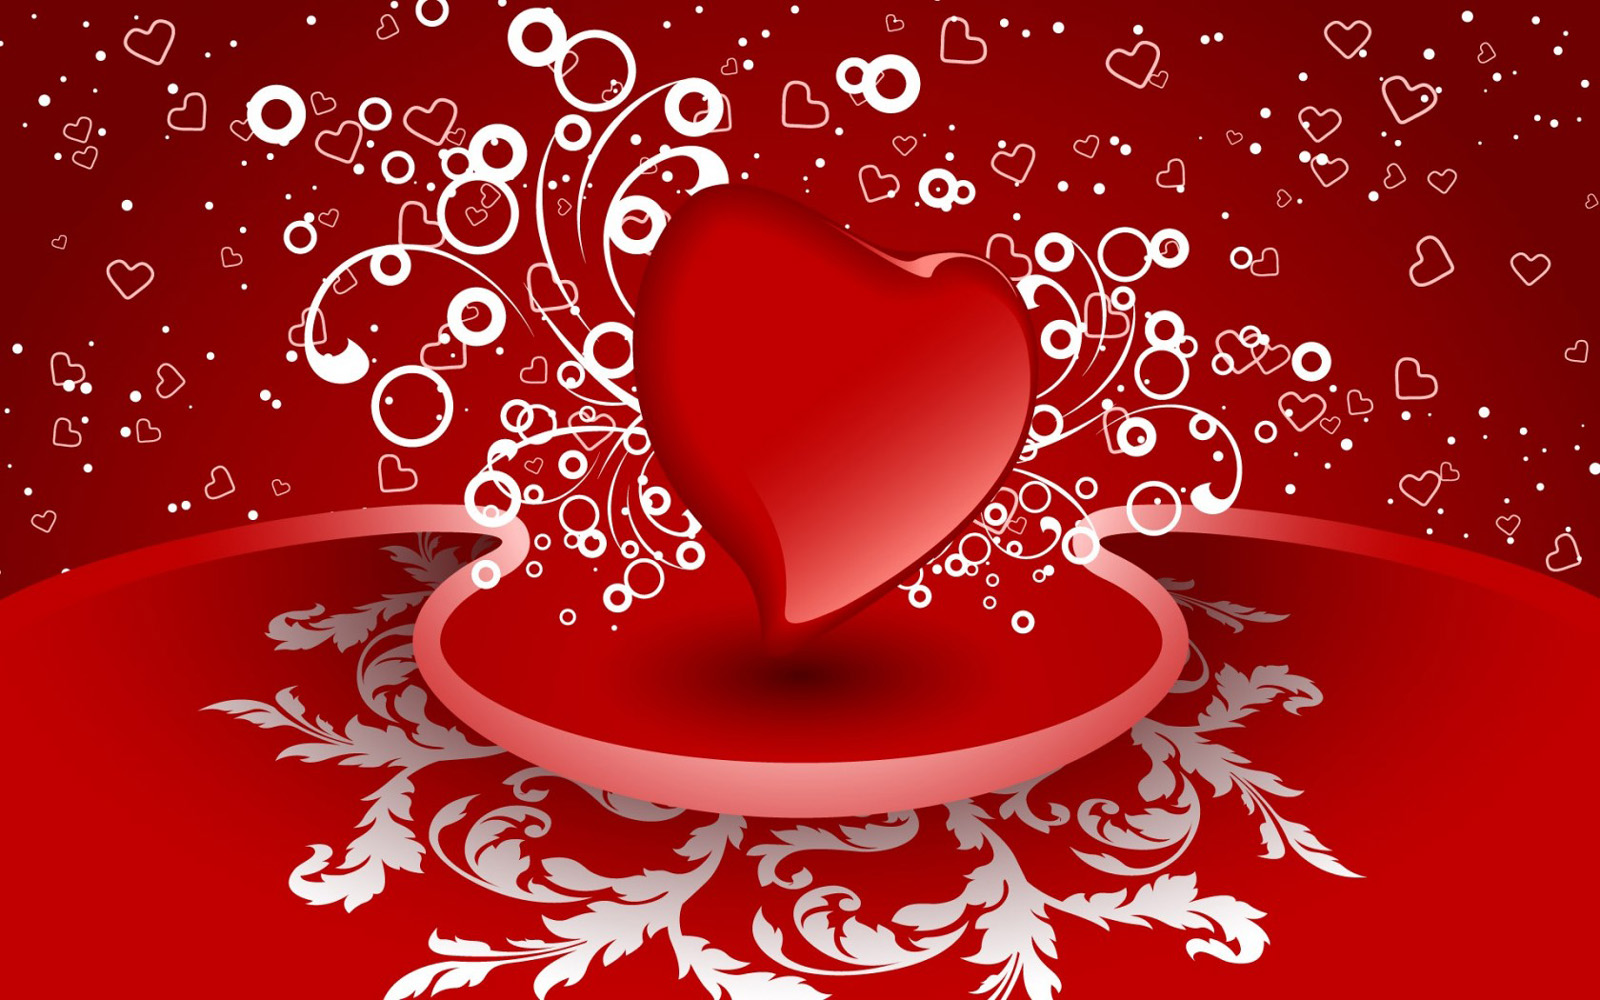 Download full hd valentine s day wallpapers for mobile - Cartoon valentine wallpaper ...